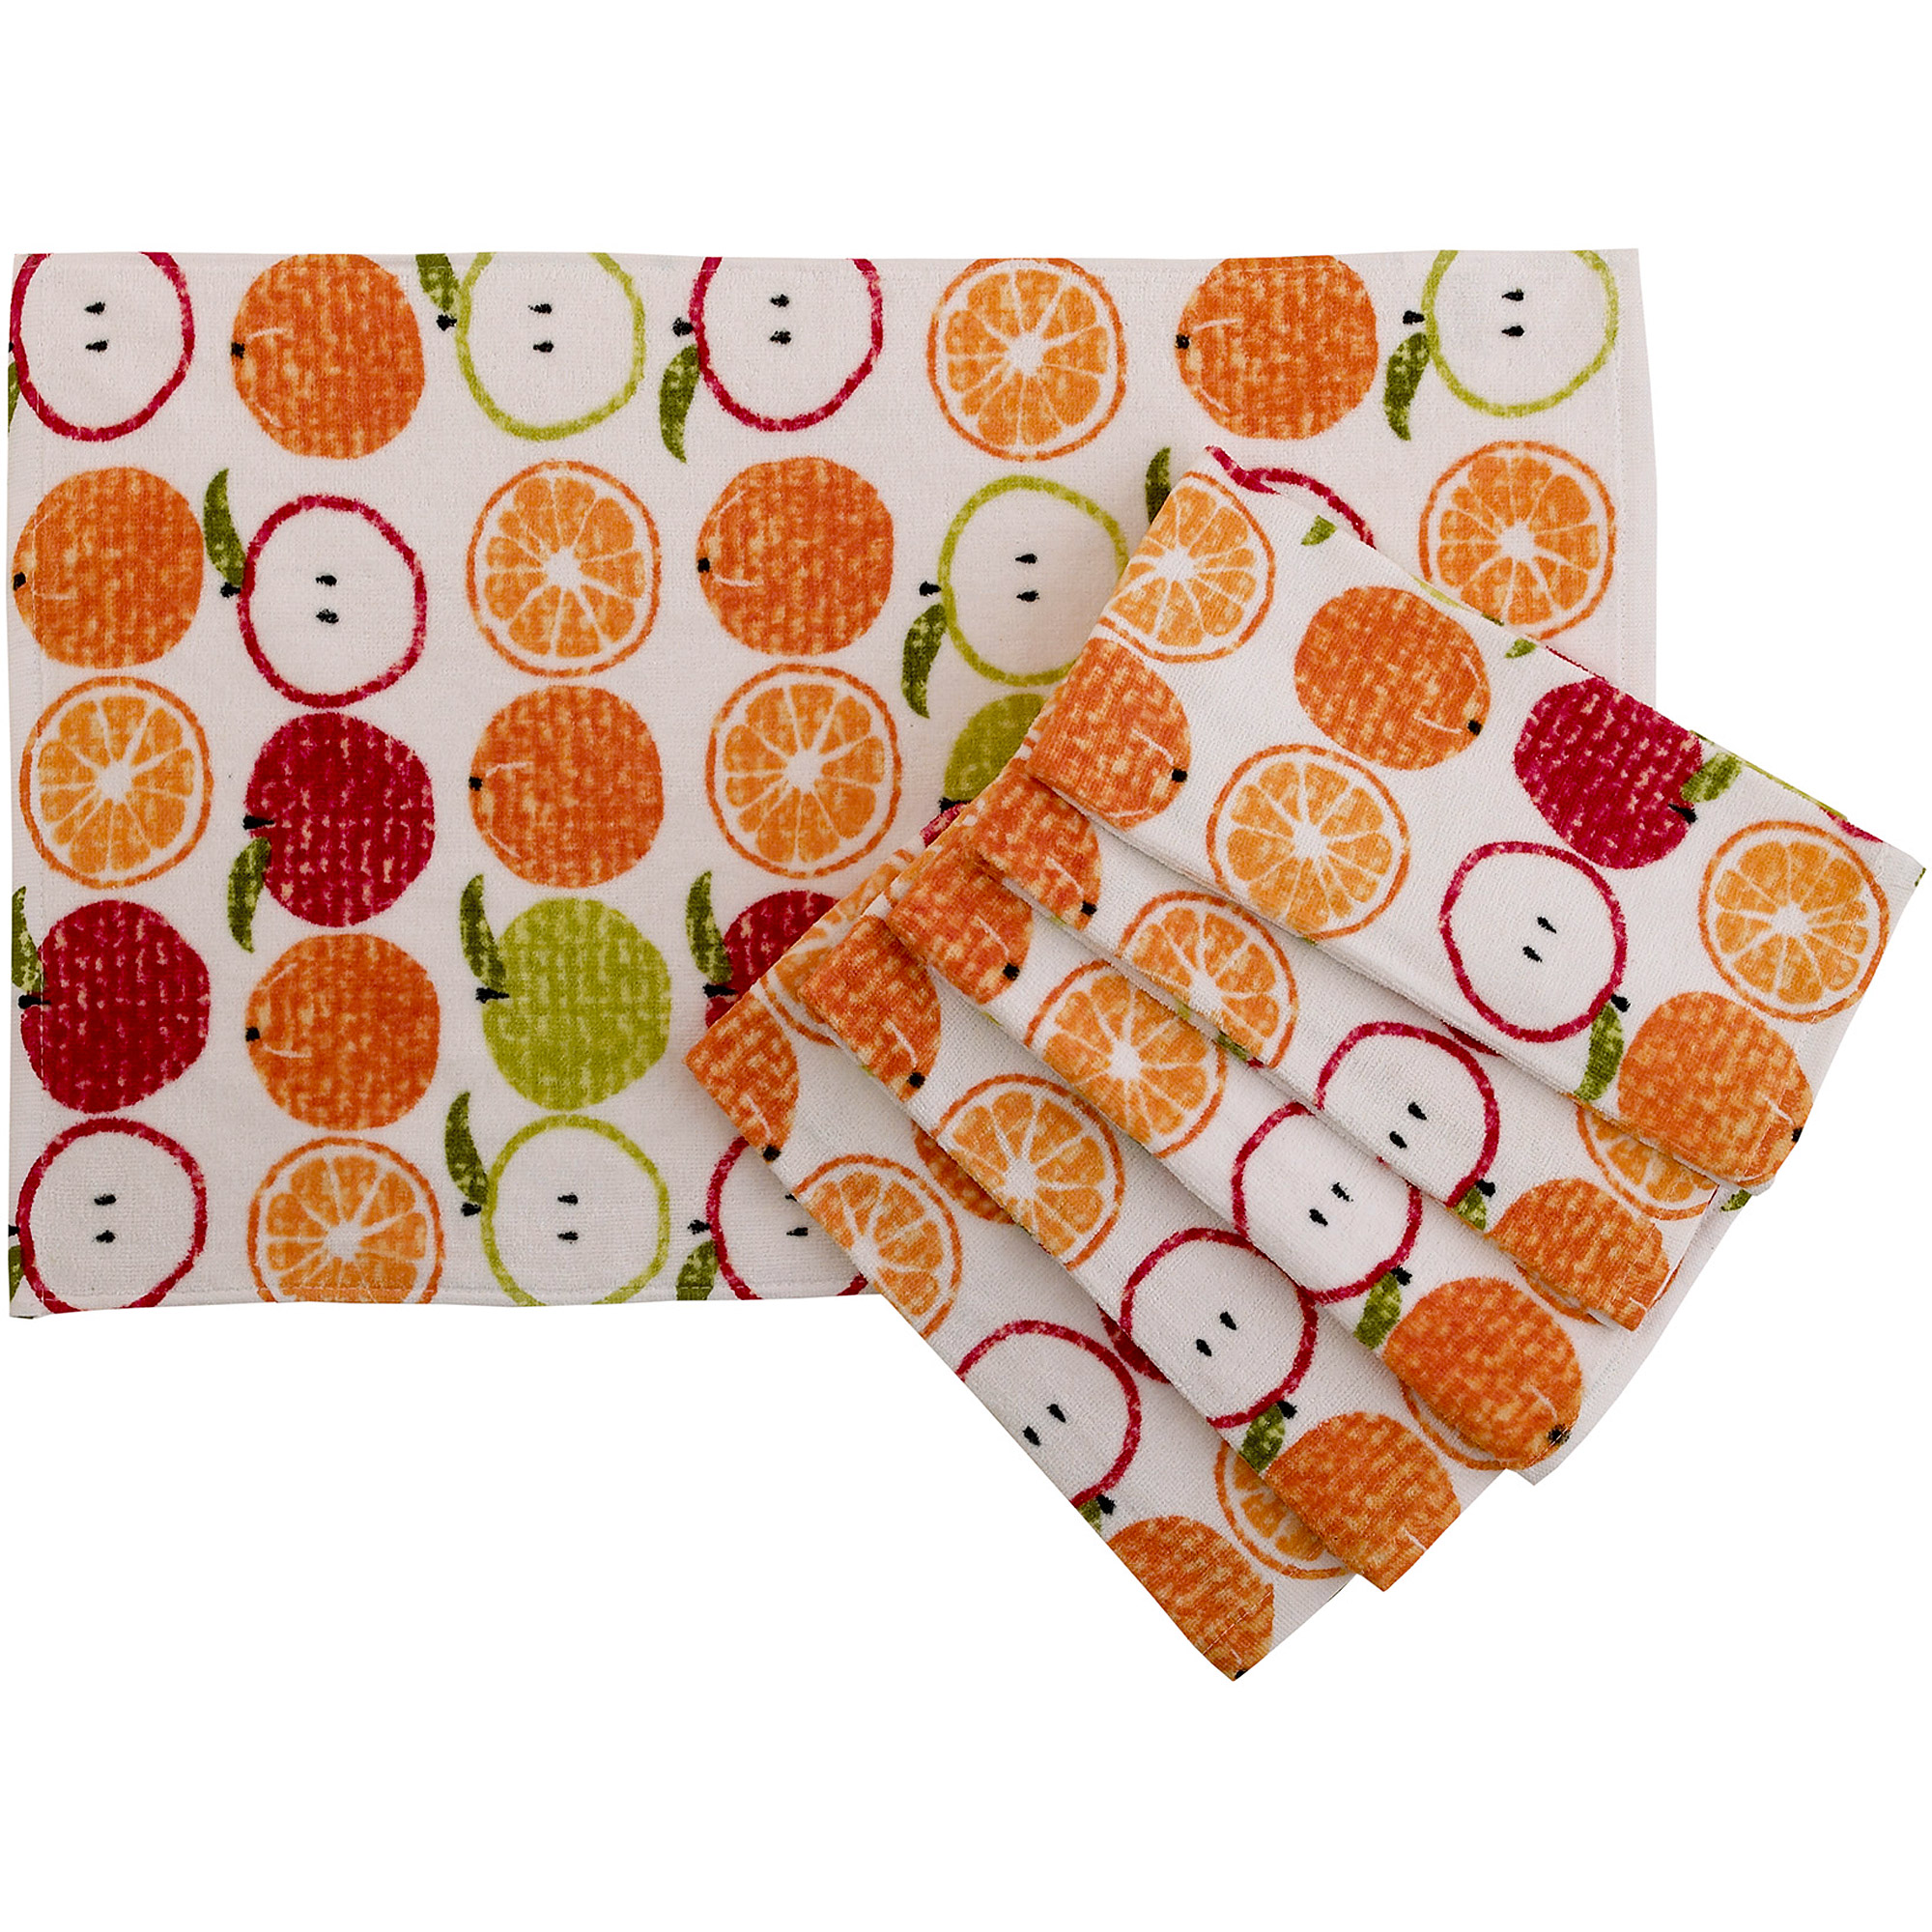 Mainstays Fruit Kitchen Towel, Set of 6